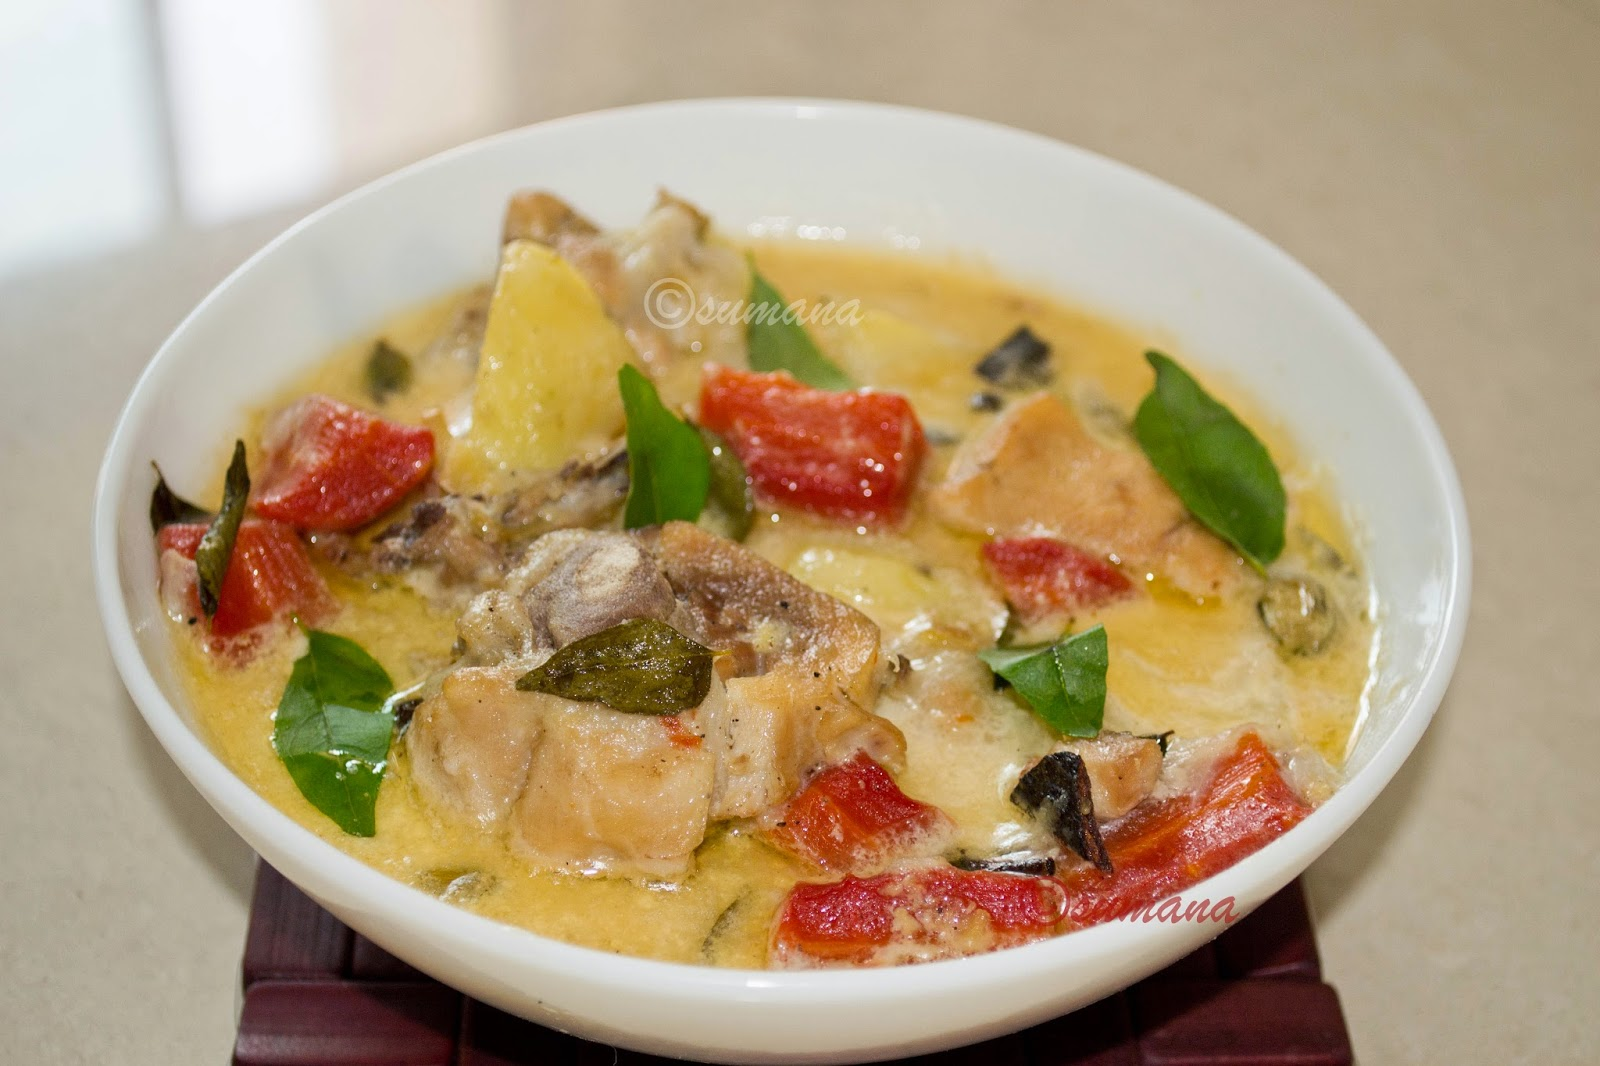 Keralian Chicken Stew with Coconut milk